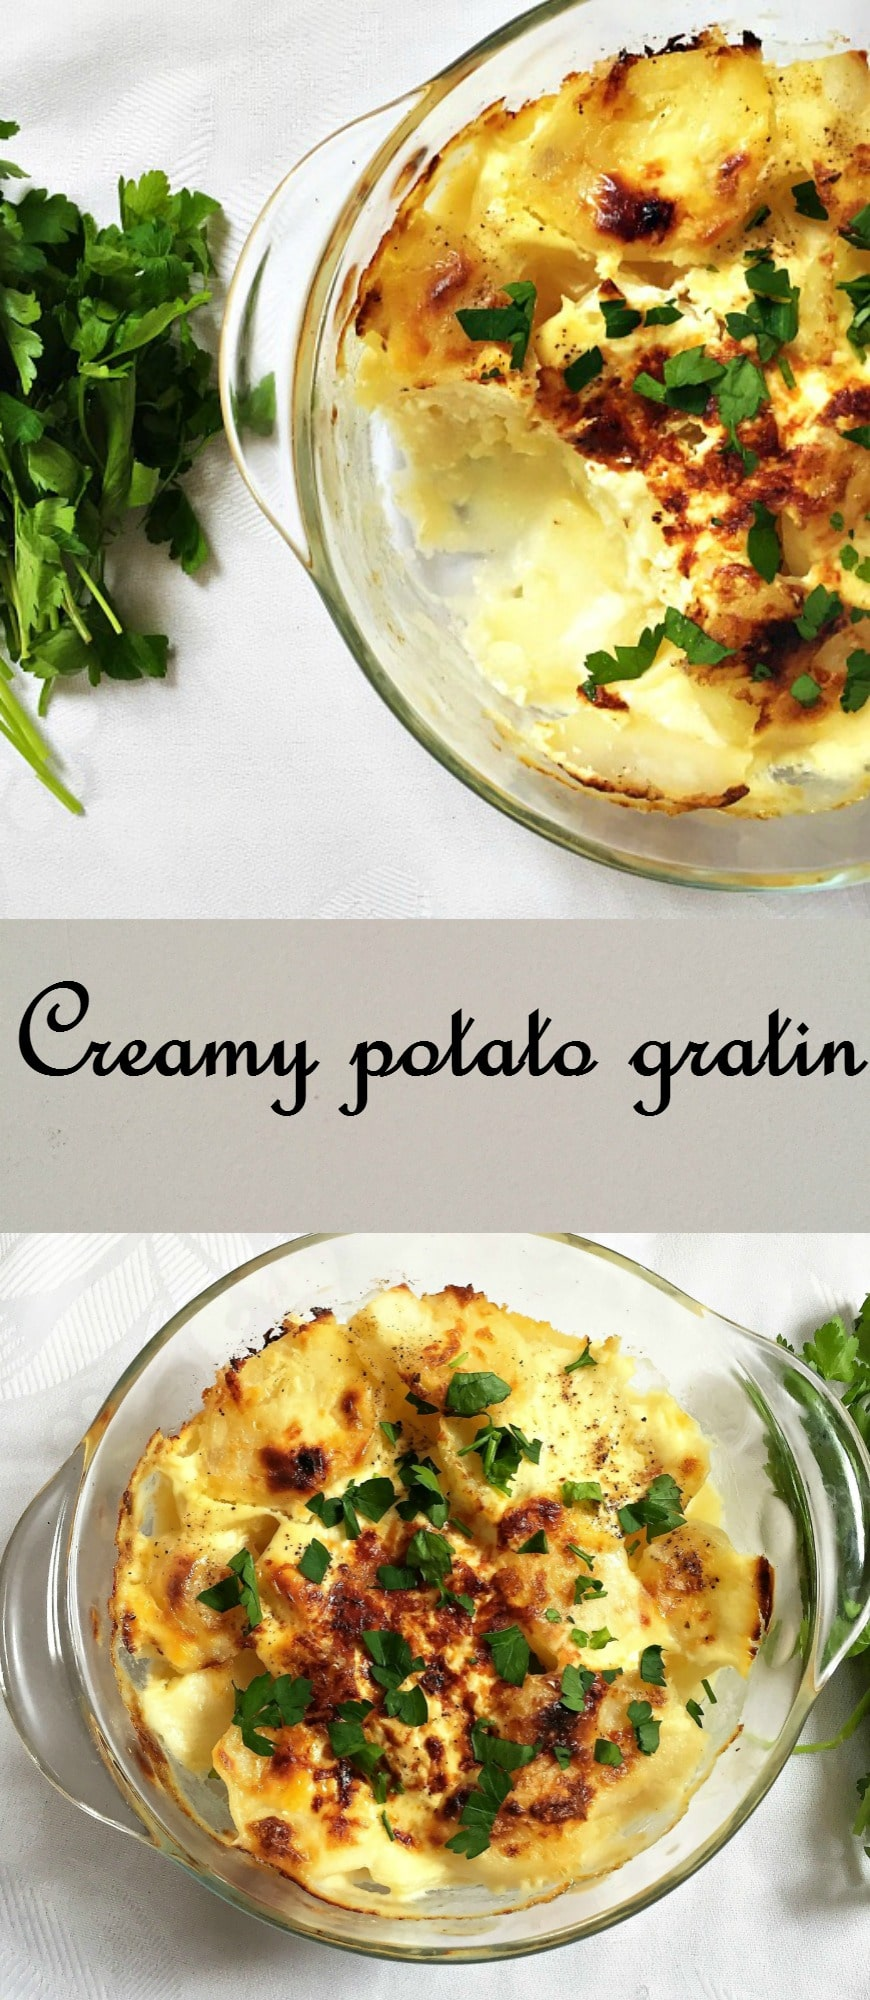 Creamy potato gratin